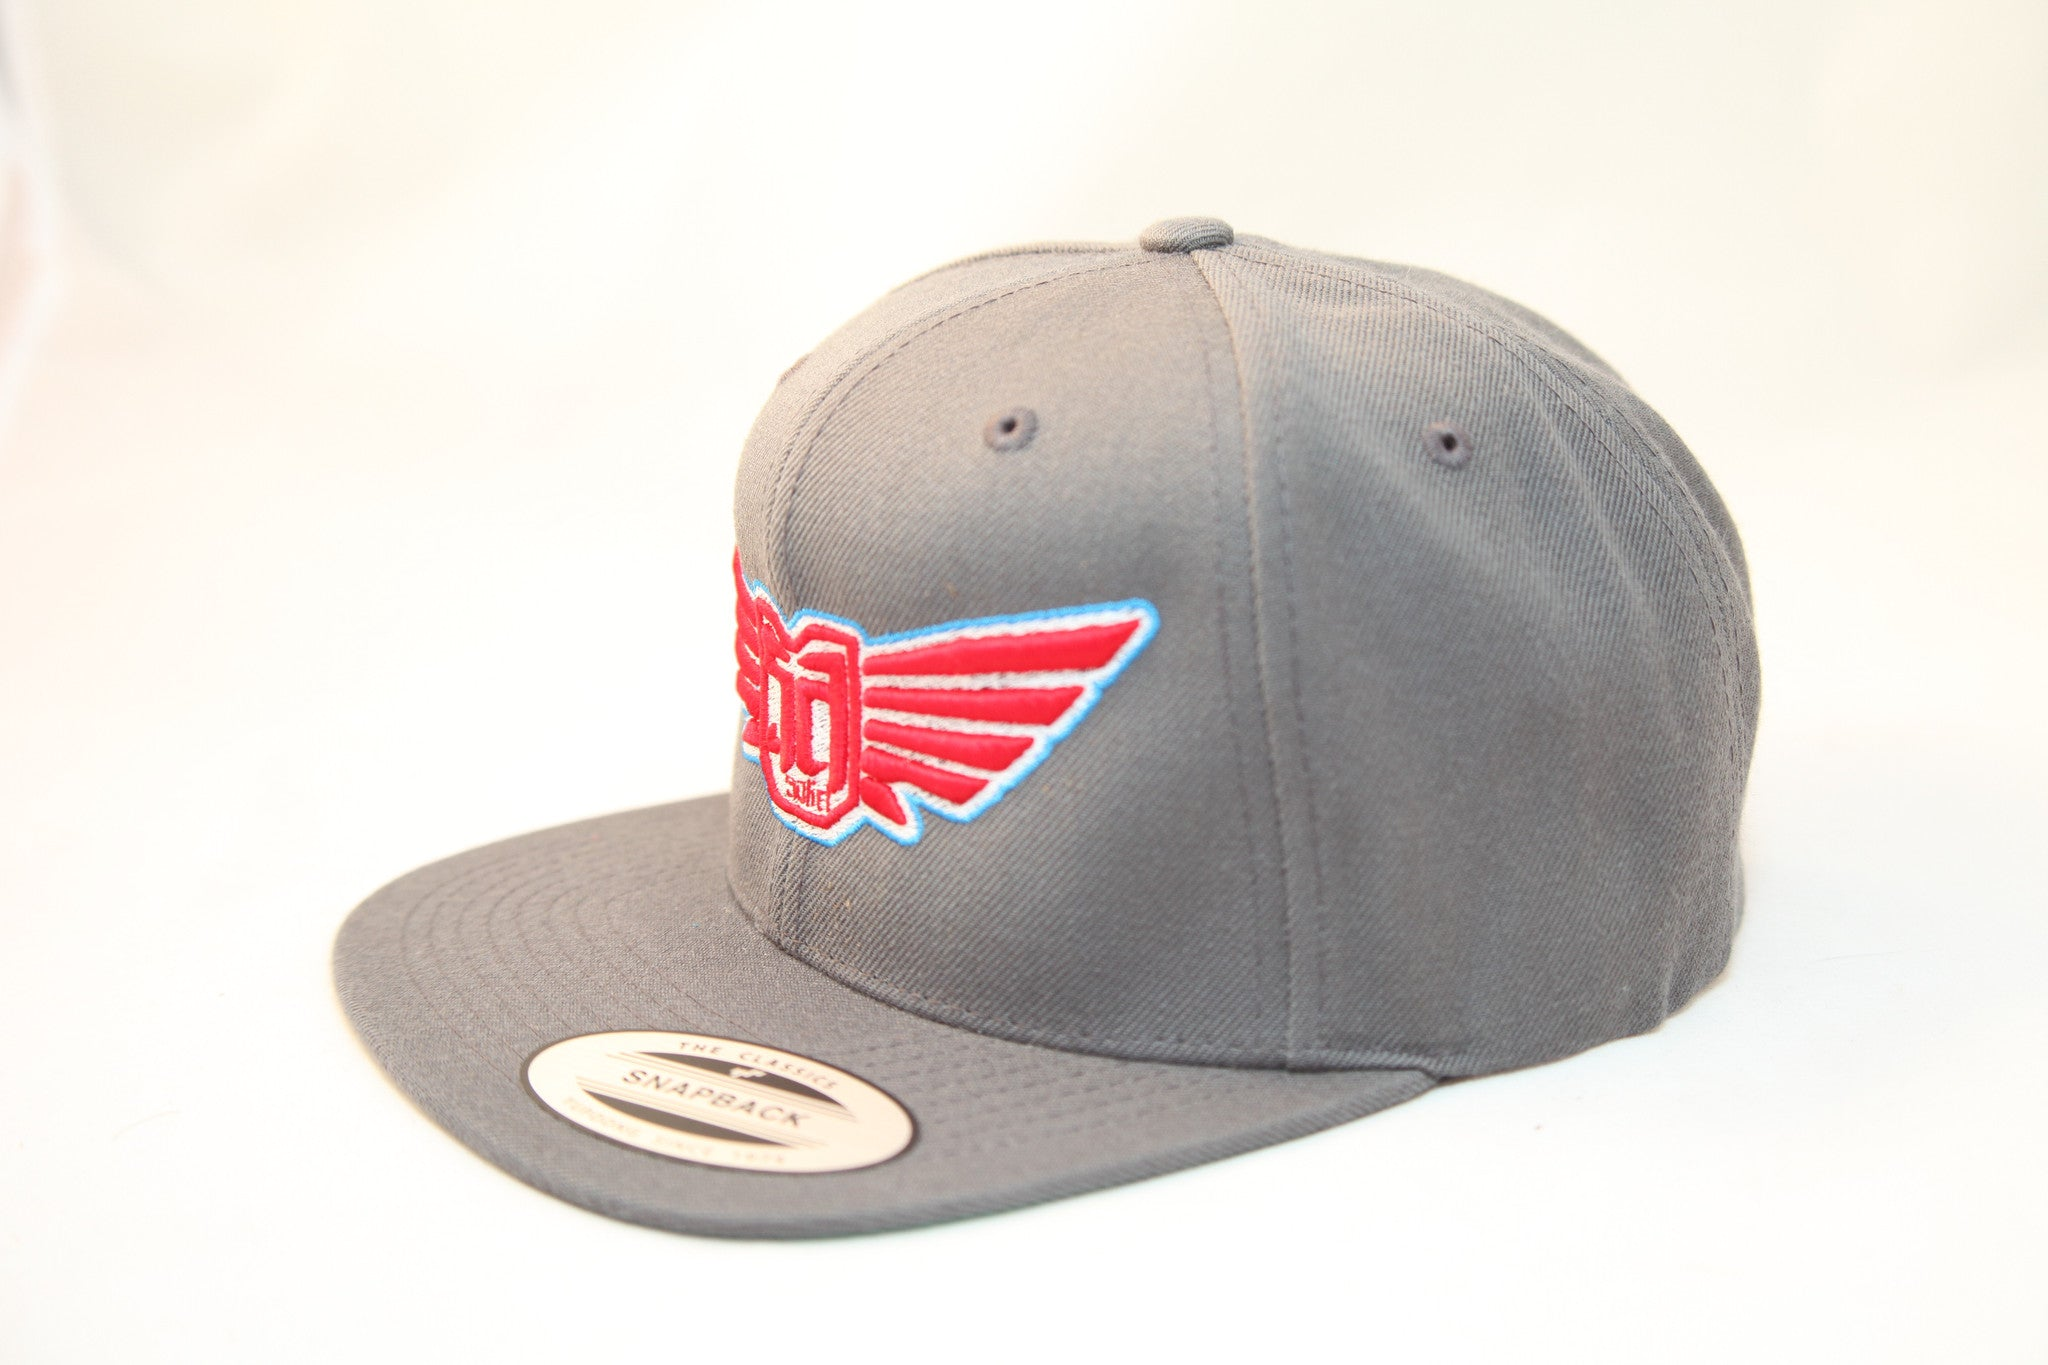 FLEXFIT SNAP BACK HAT - CHARCOAL - LRED / WHT / BLUE LOGO